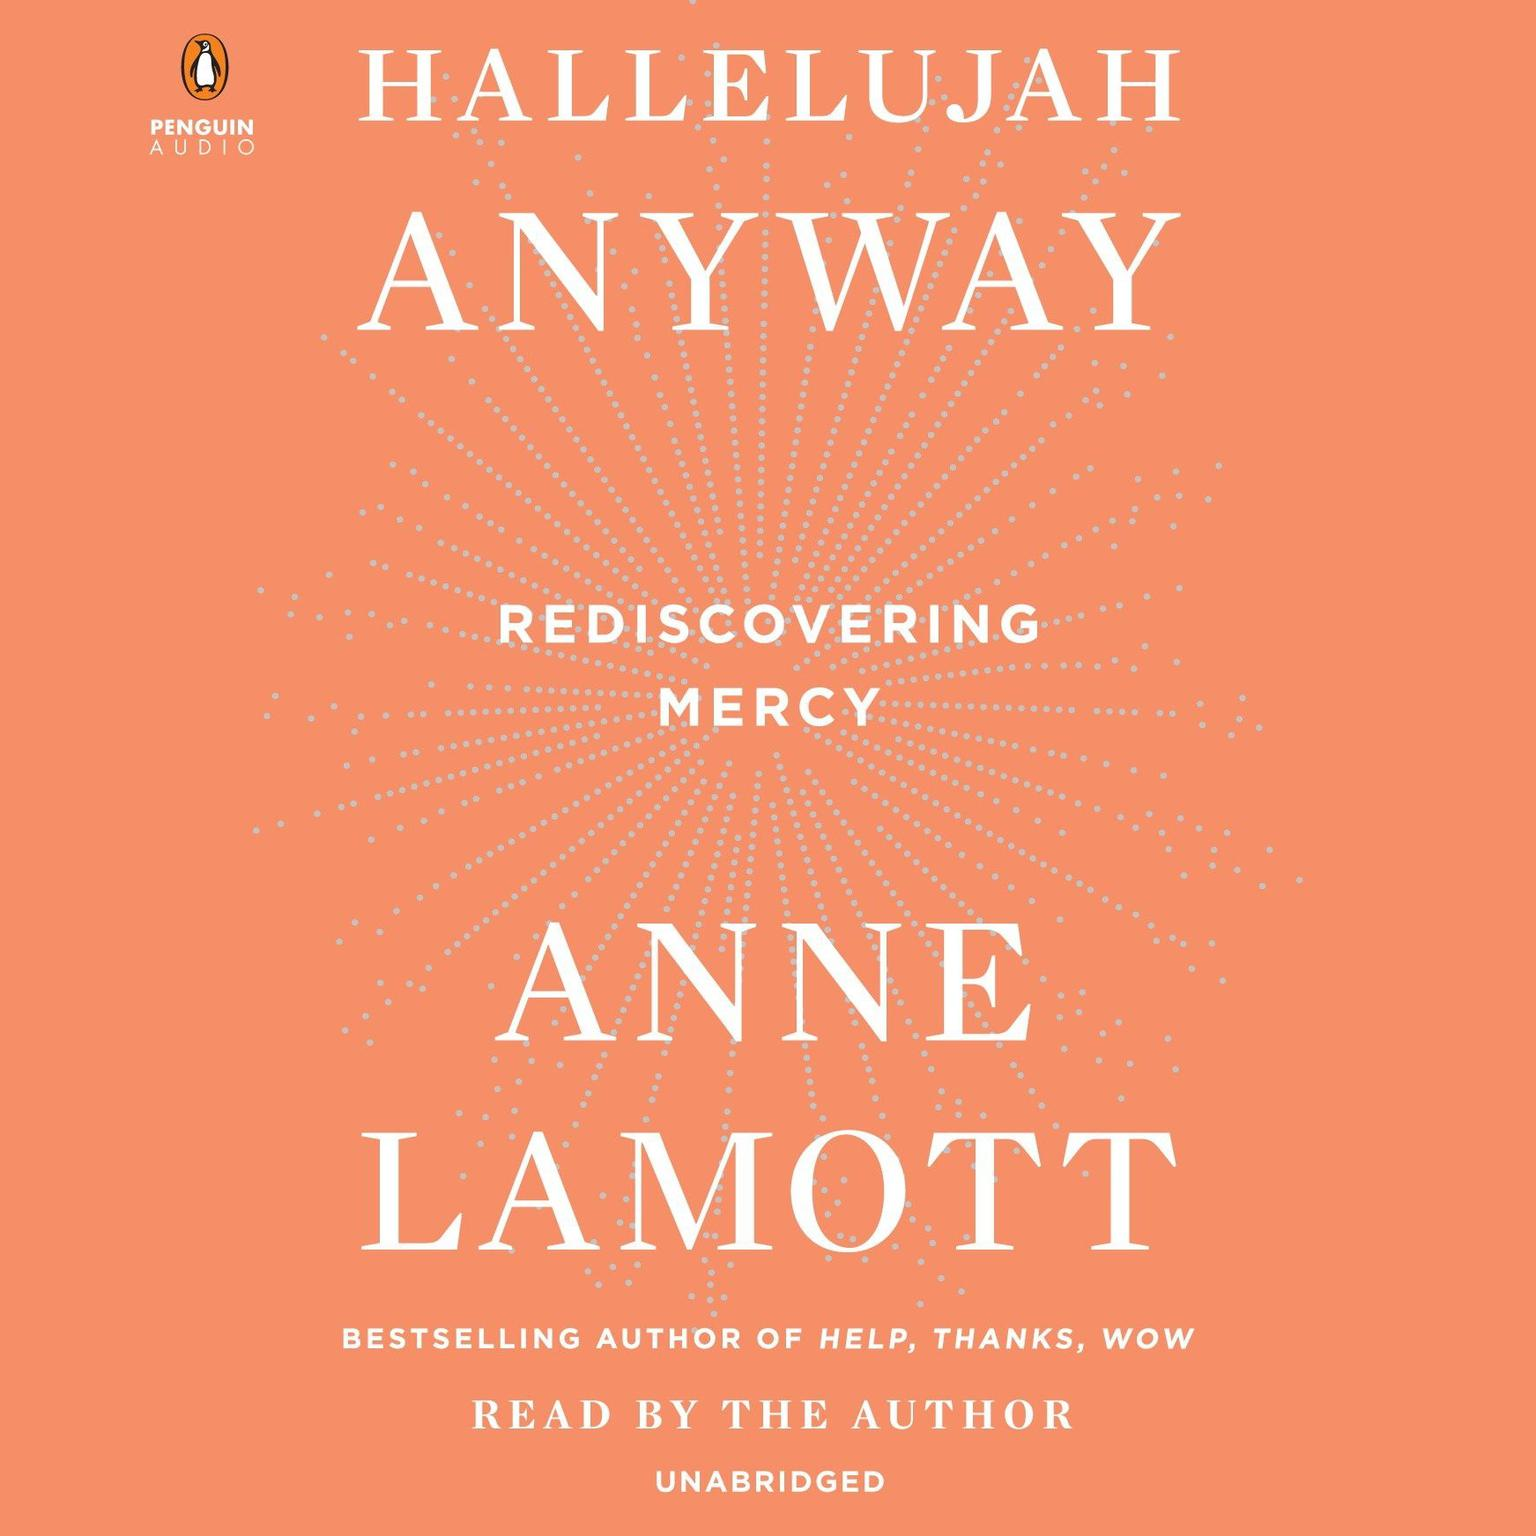 Printable Hallelujah Anyway: Rediscovering Mercy Audiobook Cover Art